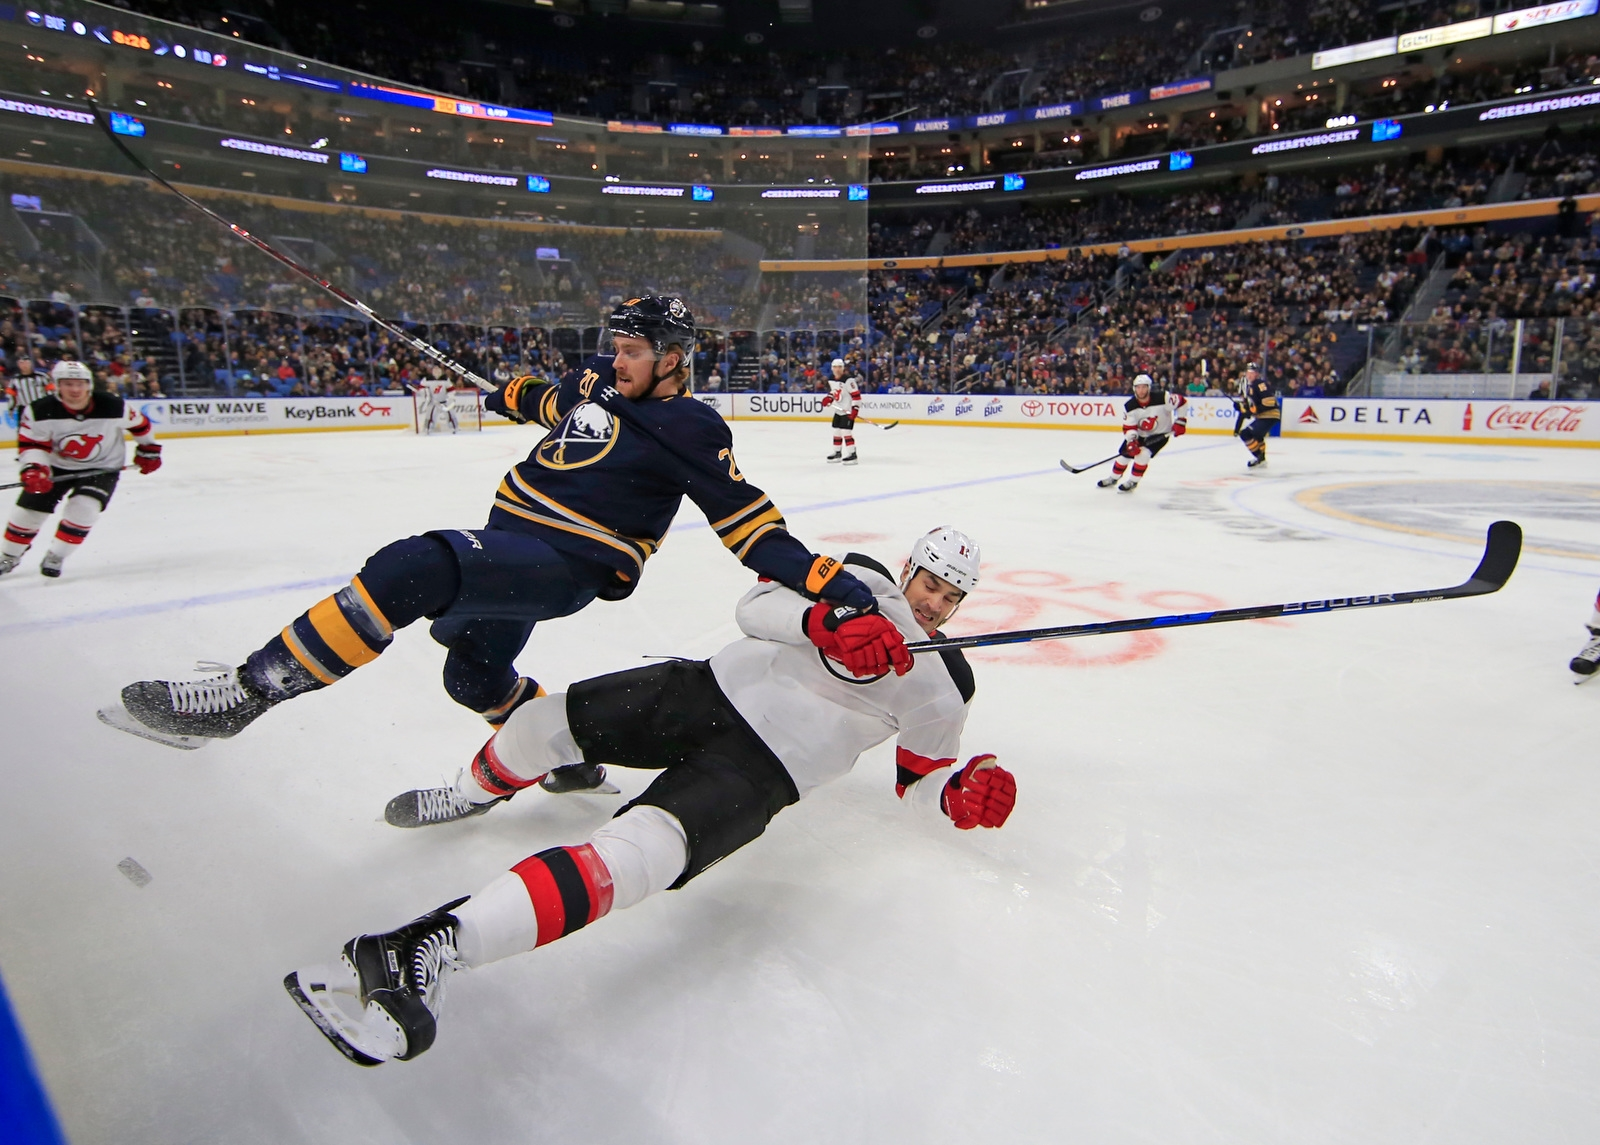 Buffalo Sabre Scott Wilson and New Jersey Devil Brian Boyle collide during first period action at the KeyBank Center on Tuesday, Jan. 30, 2018.